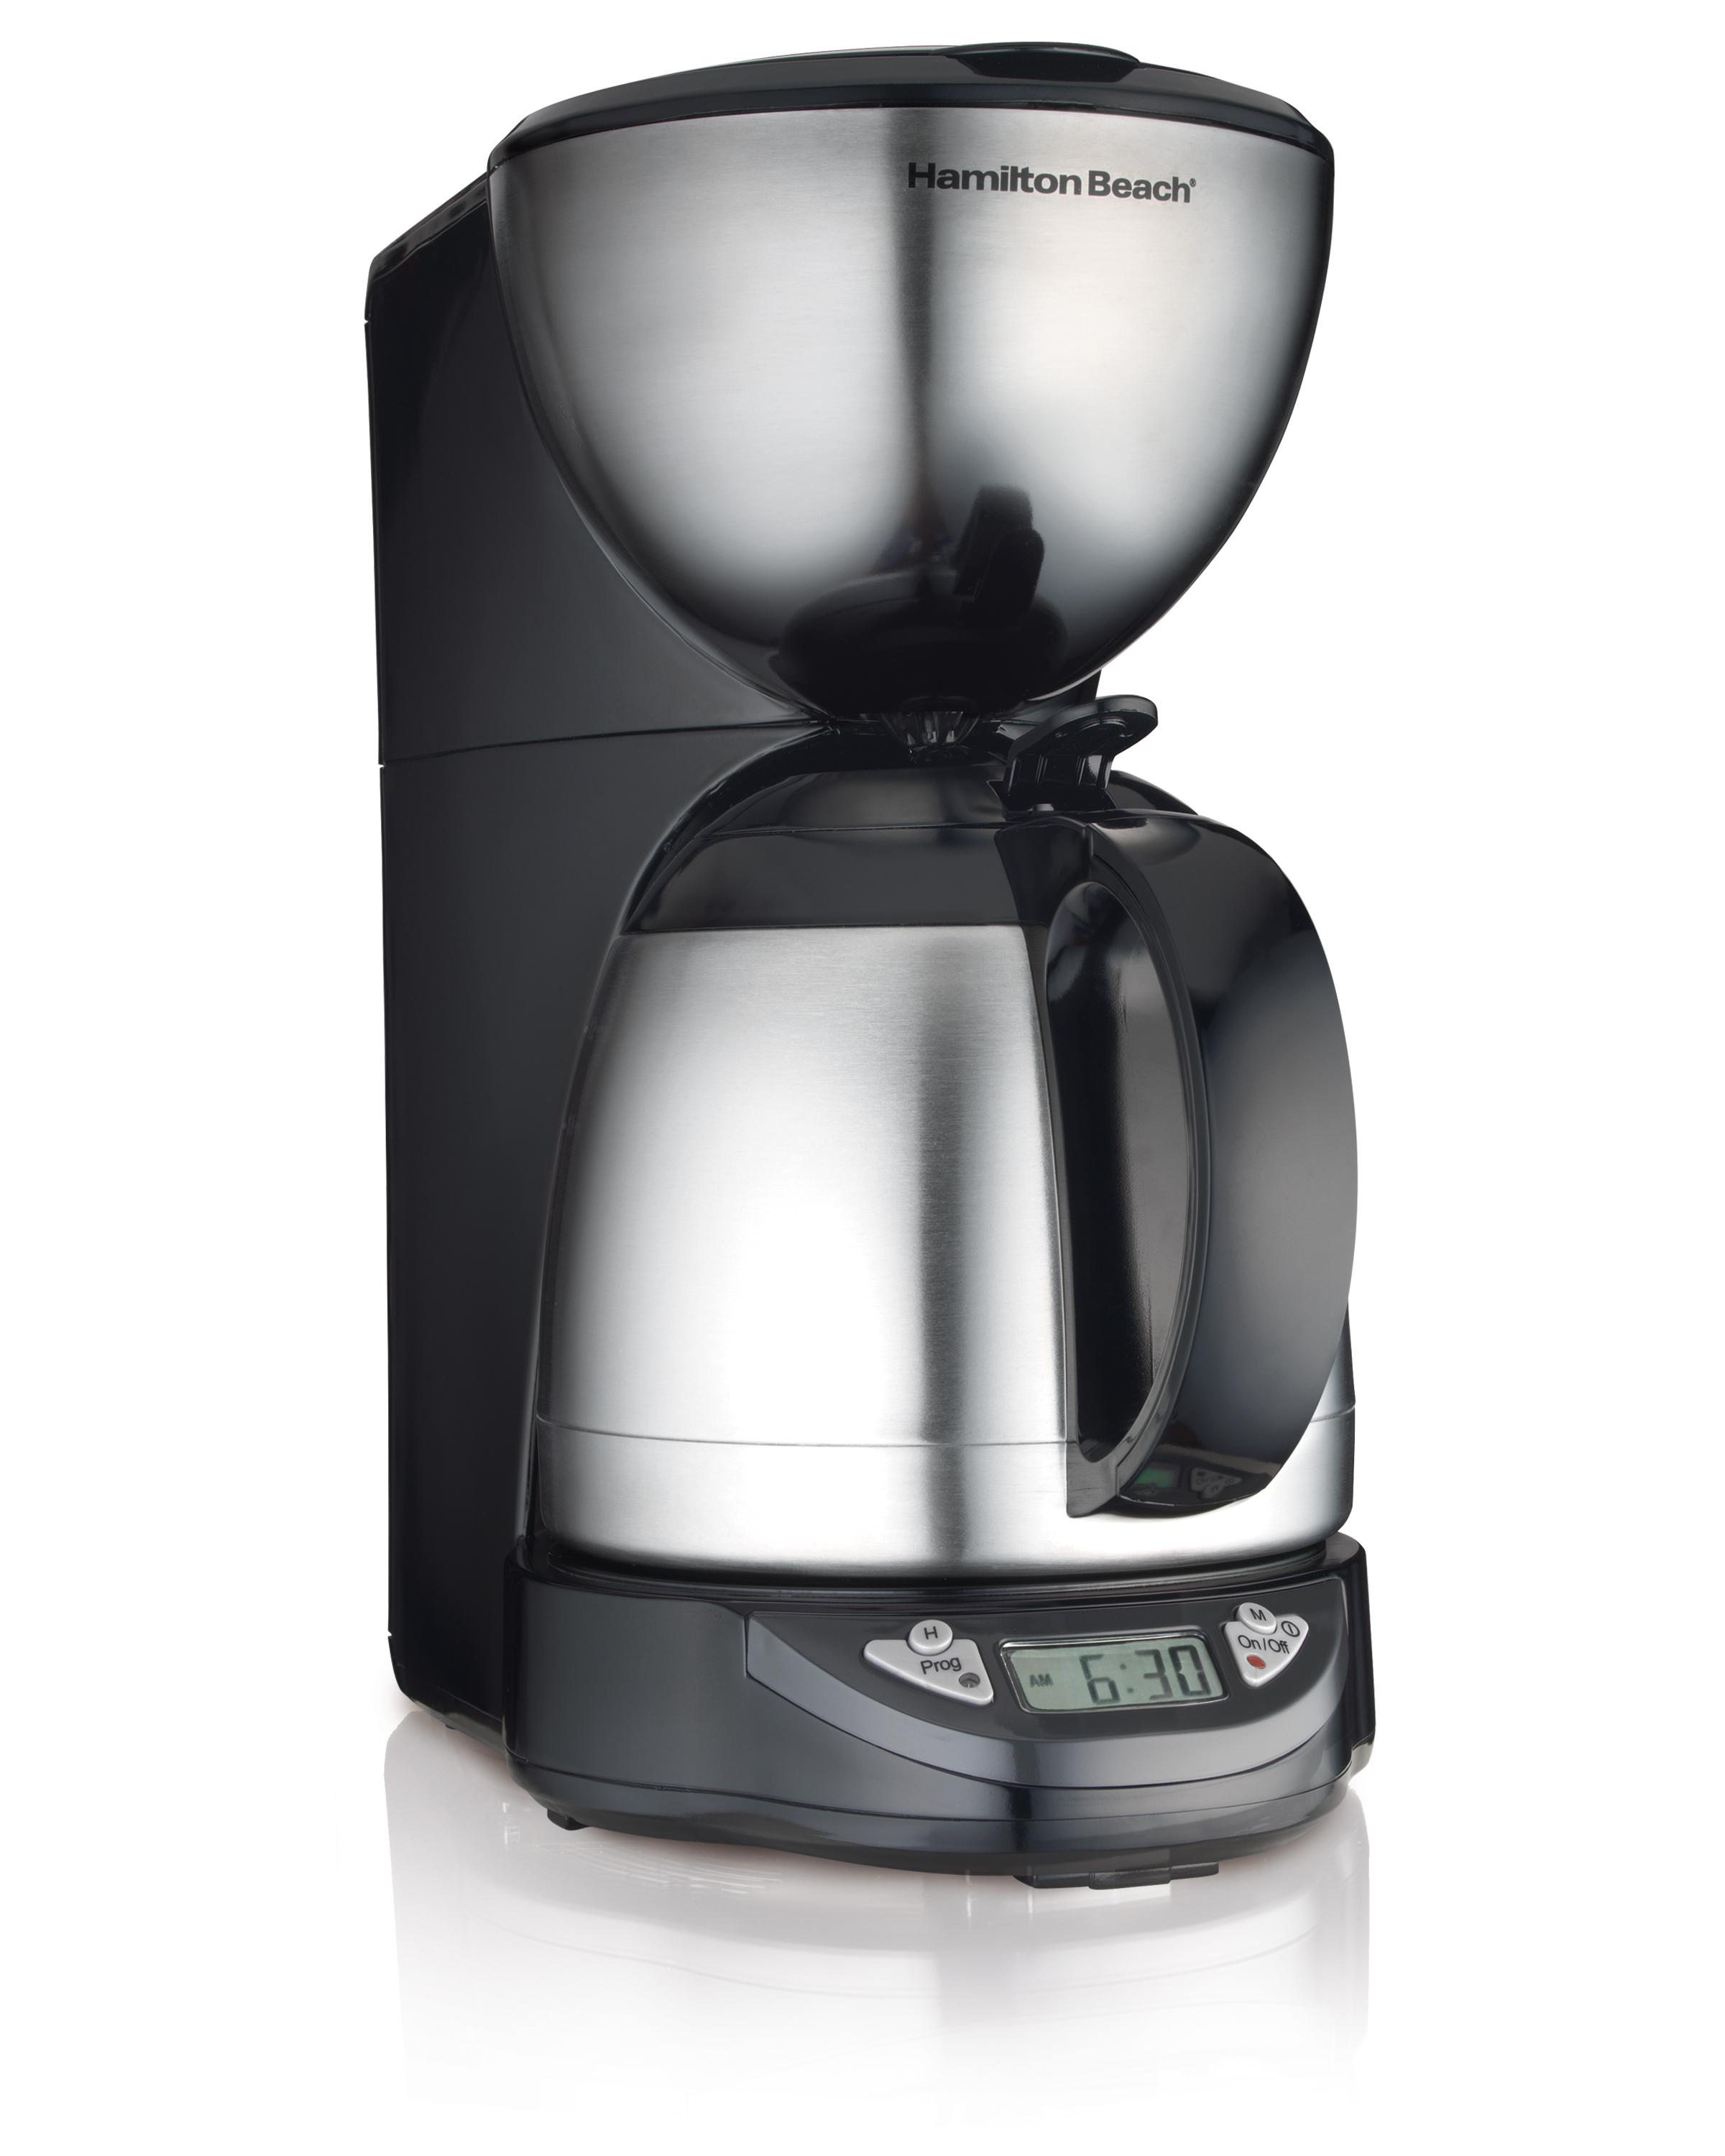 Amazon.com: Hamilton Beach 10-Cup Coffee Maker, Programmable with Thermal Insulated Carafe ...